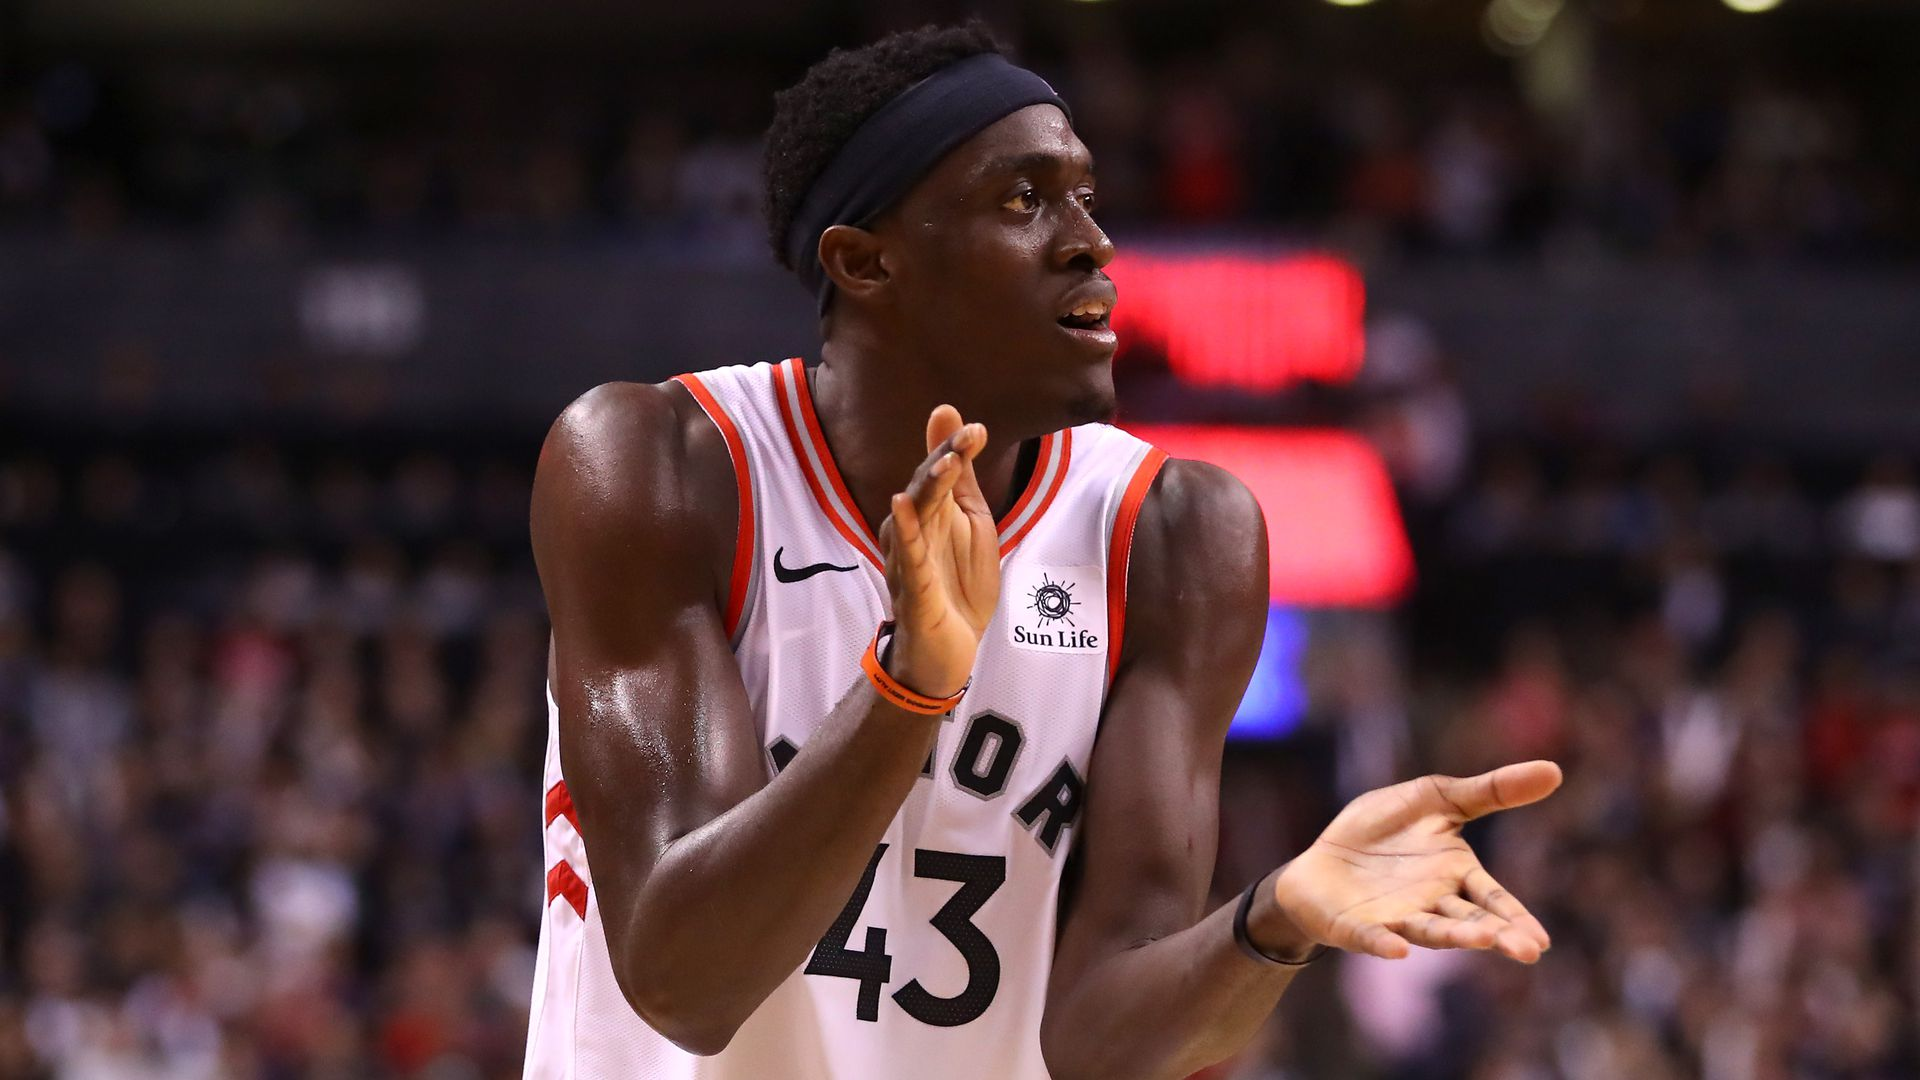 Pascal Siakam clapping